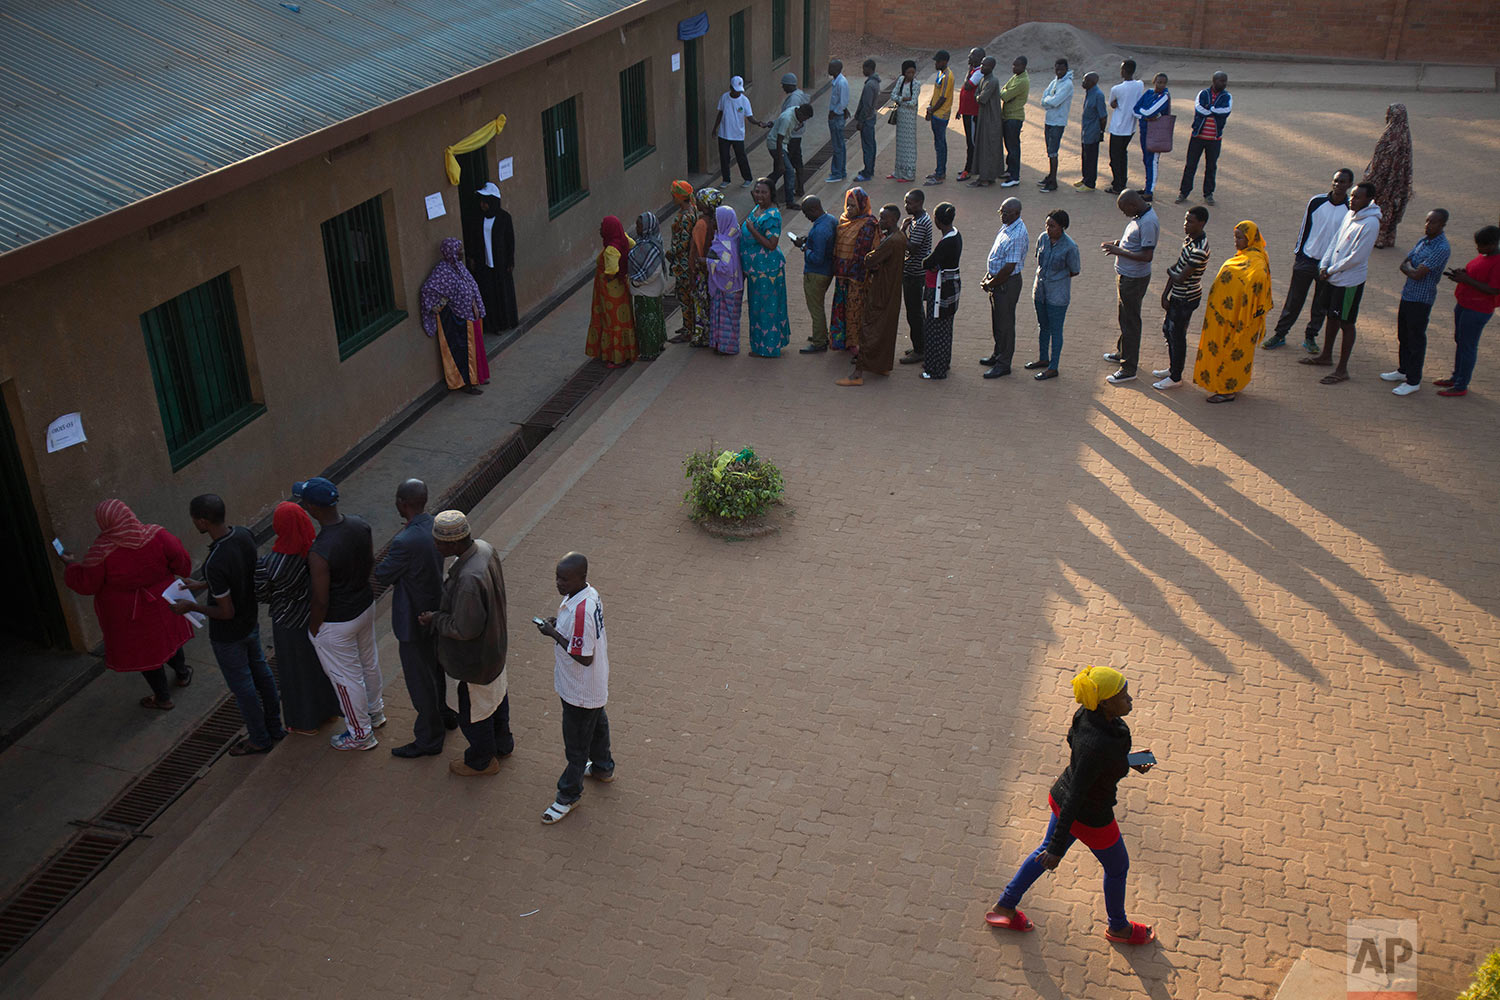 Rwandans line up to cast their vote for the presidential elections at a polling station in Rwanda's capital Kigali Friday, Aug. 4, 2017. Outgoing President Paul Kagame is widely expected to win another term after the government disqualified all but three candidates. (AP Photo/Jerome Delay)